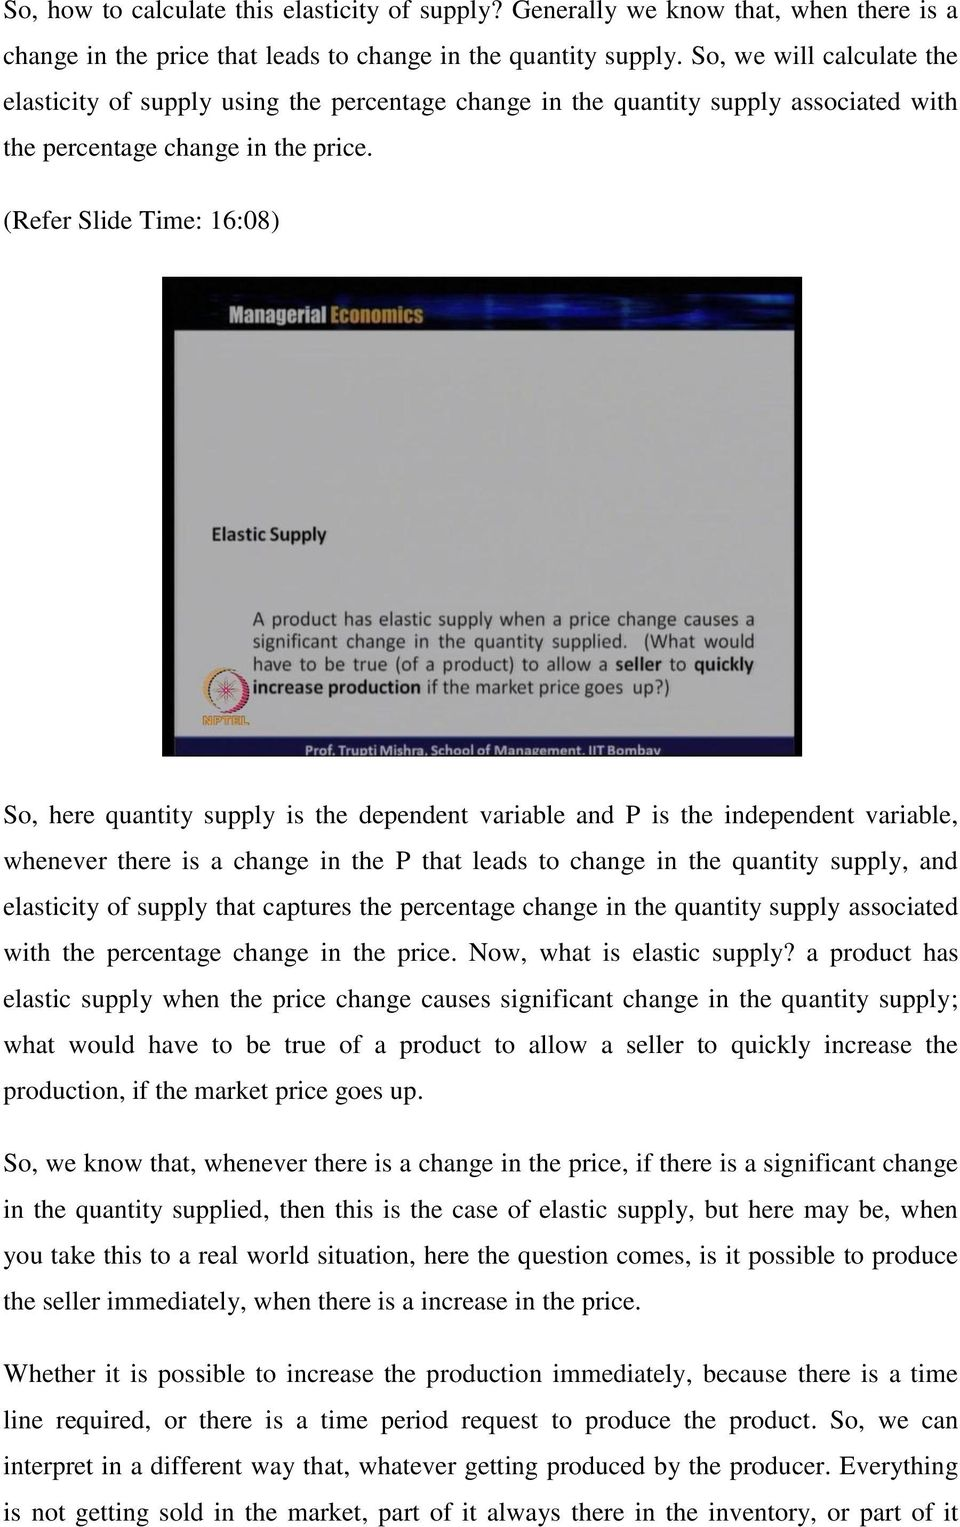 (Refer Slide Time: 16:08) So, here quantity supply is the dependent variable and P is the independent variable, whenever there is a change in the P that leads to change in the quantity supply, and